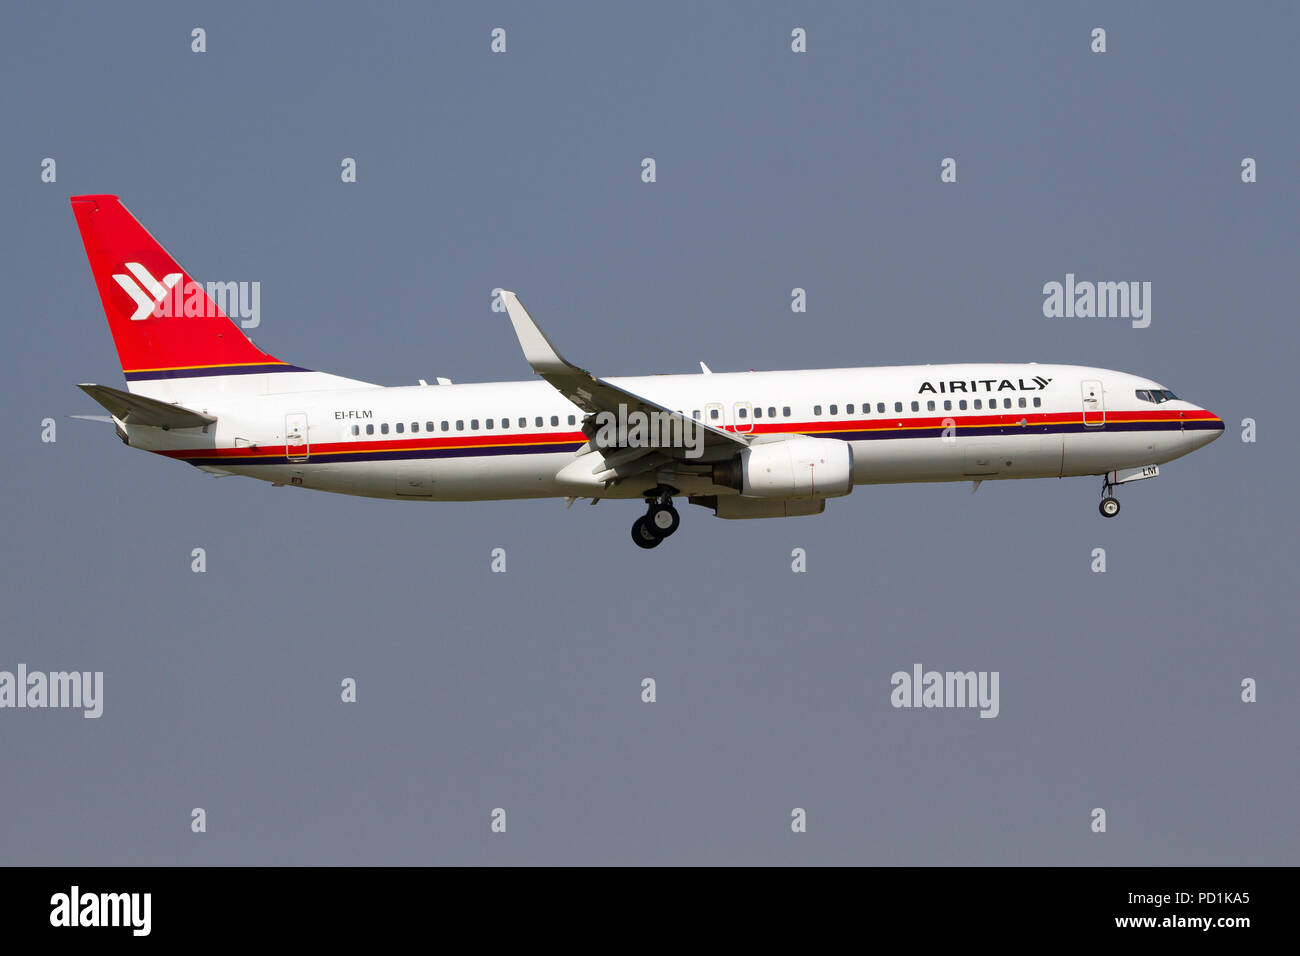 Milan, Italy. 4th Aug, 2018. A former Meridiana now Air Italy Boeing 737-800 landing at Milano Linate airport. Credit: Fabrizio Gandolfo/SOPA Images/ZUMA Wire/Alamy Live News - Stock Image